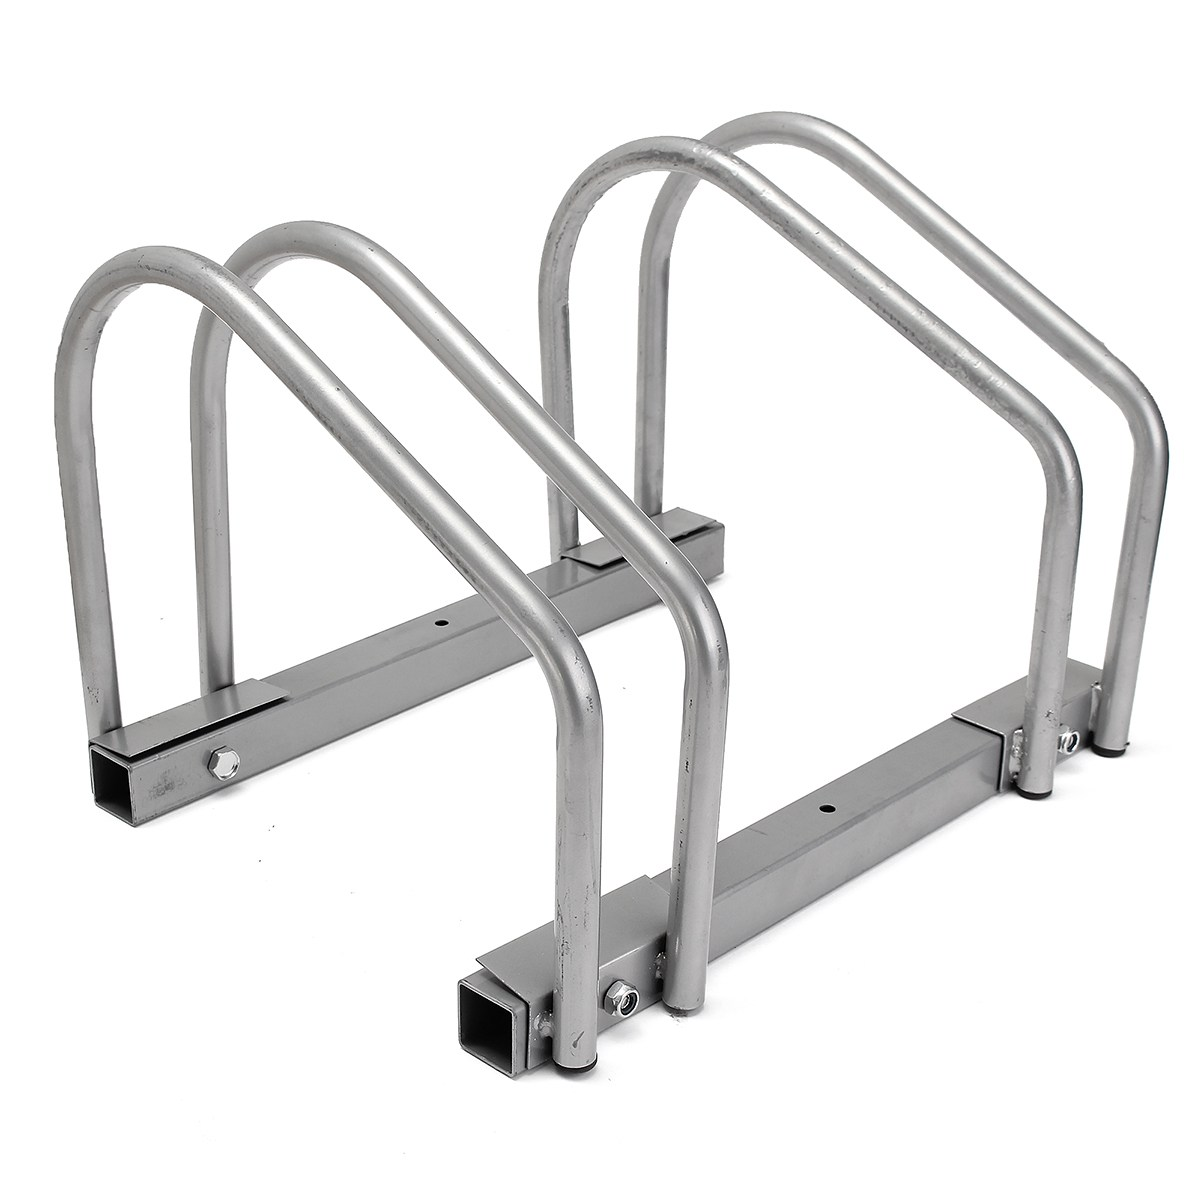 New Arrival Steel Secure Two Bicycles Storage Bike Rack Hoder MTB Mountain Road Bicycle Gear Frame Cycling Stand Bicycle Parts west biking bike chain wheel 39 53t bicycle crank 170 175mm fit speed 9 mtb road bike cycling bicycle crank